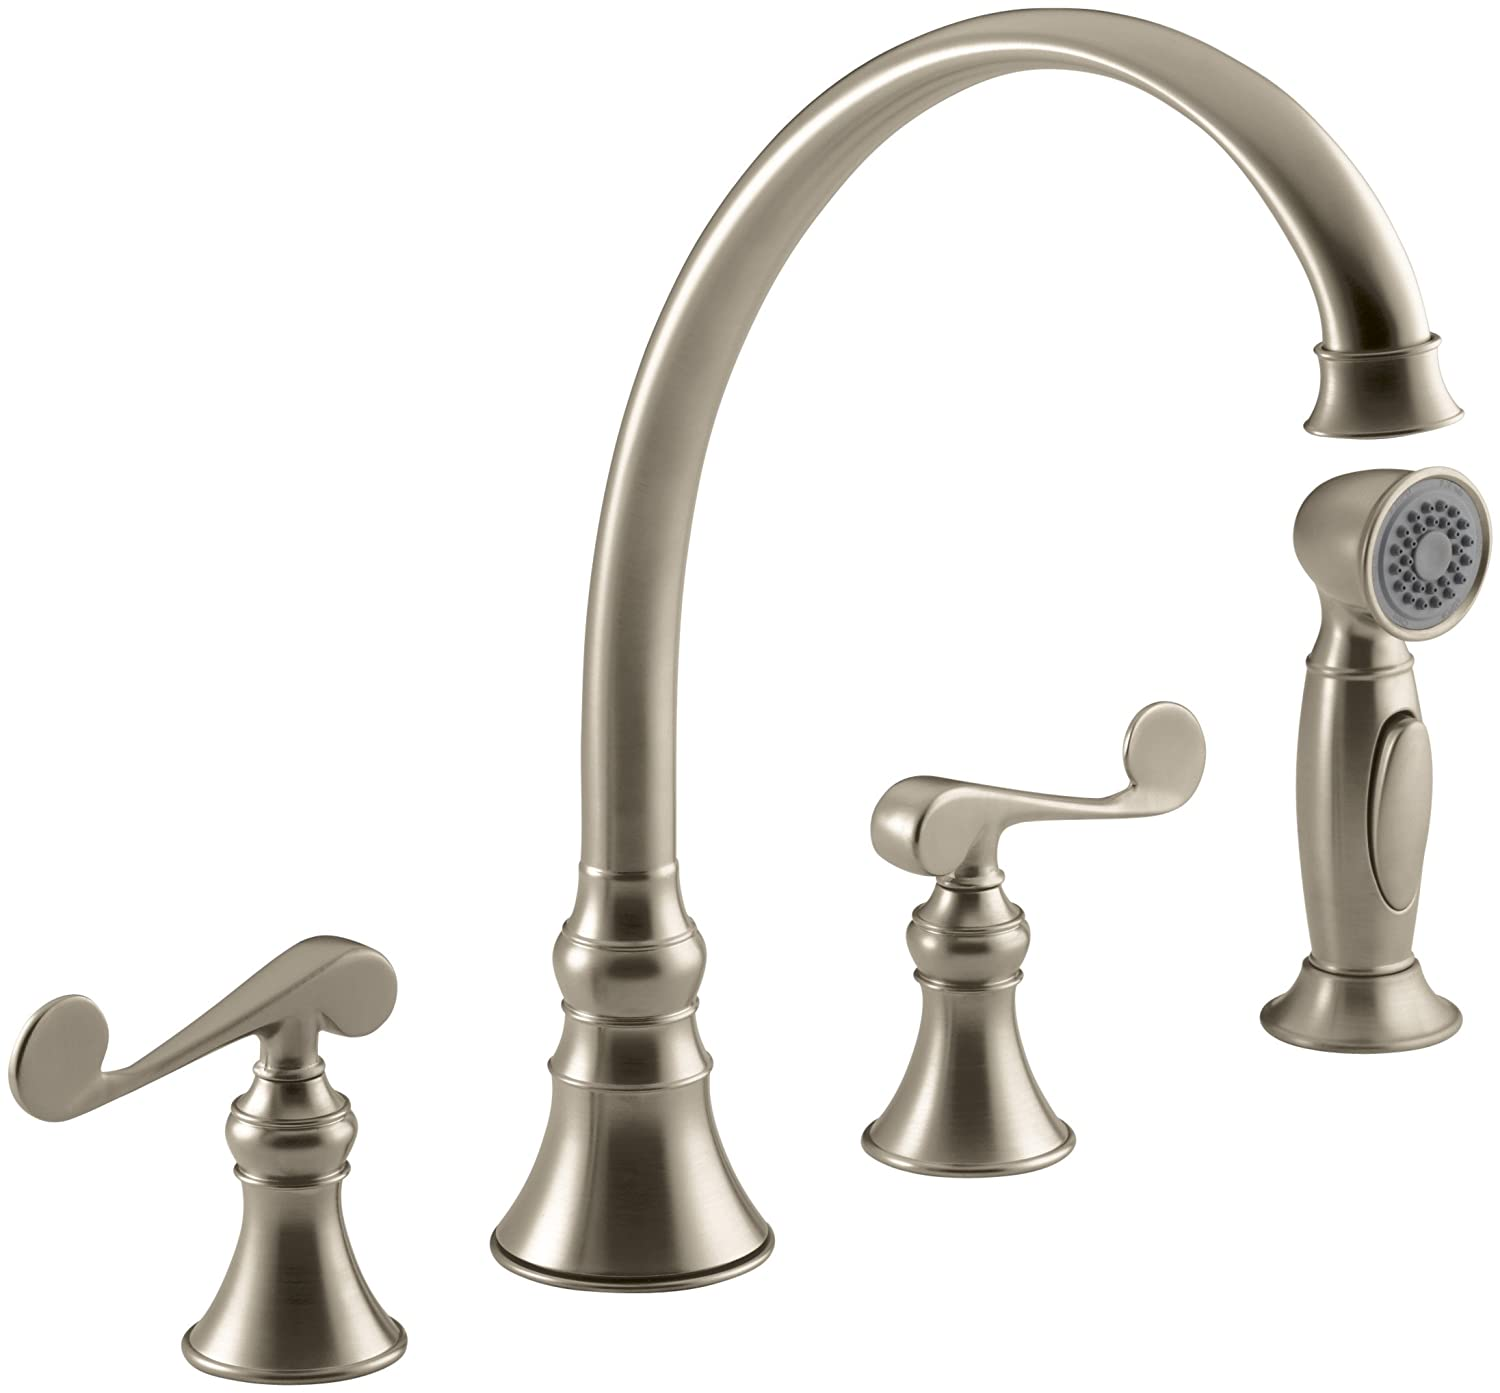 fauce mounted deck manaus finish p htm gold kitchen sink faucet